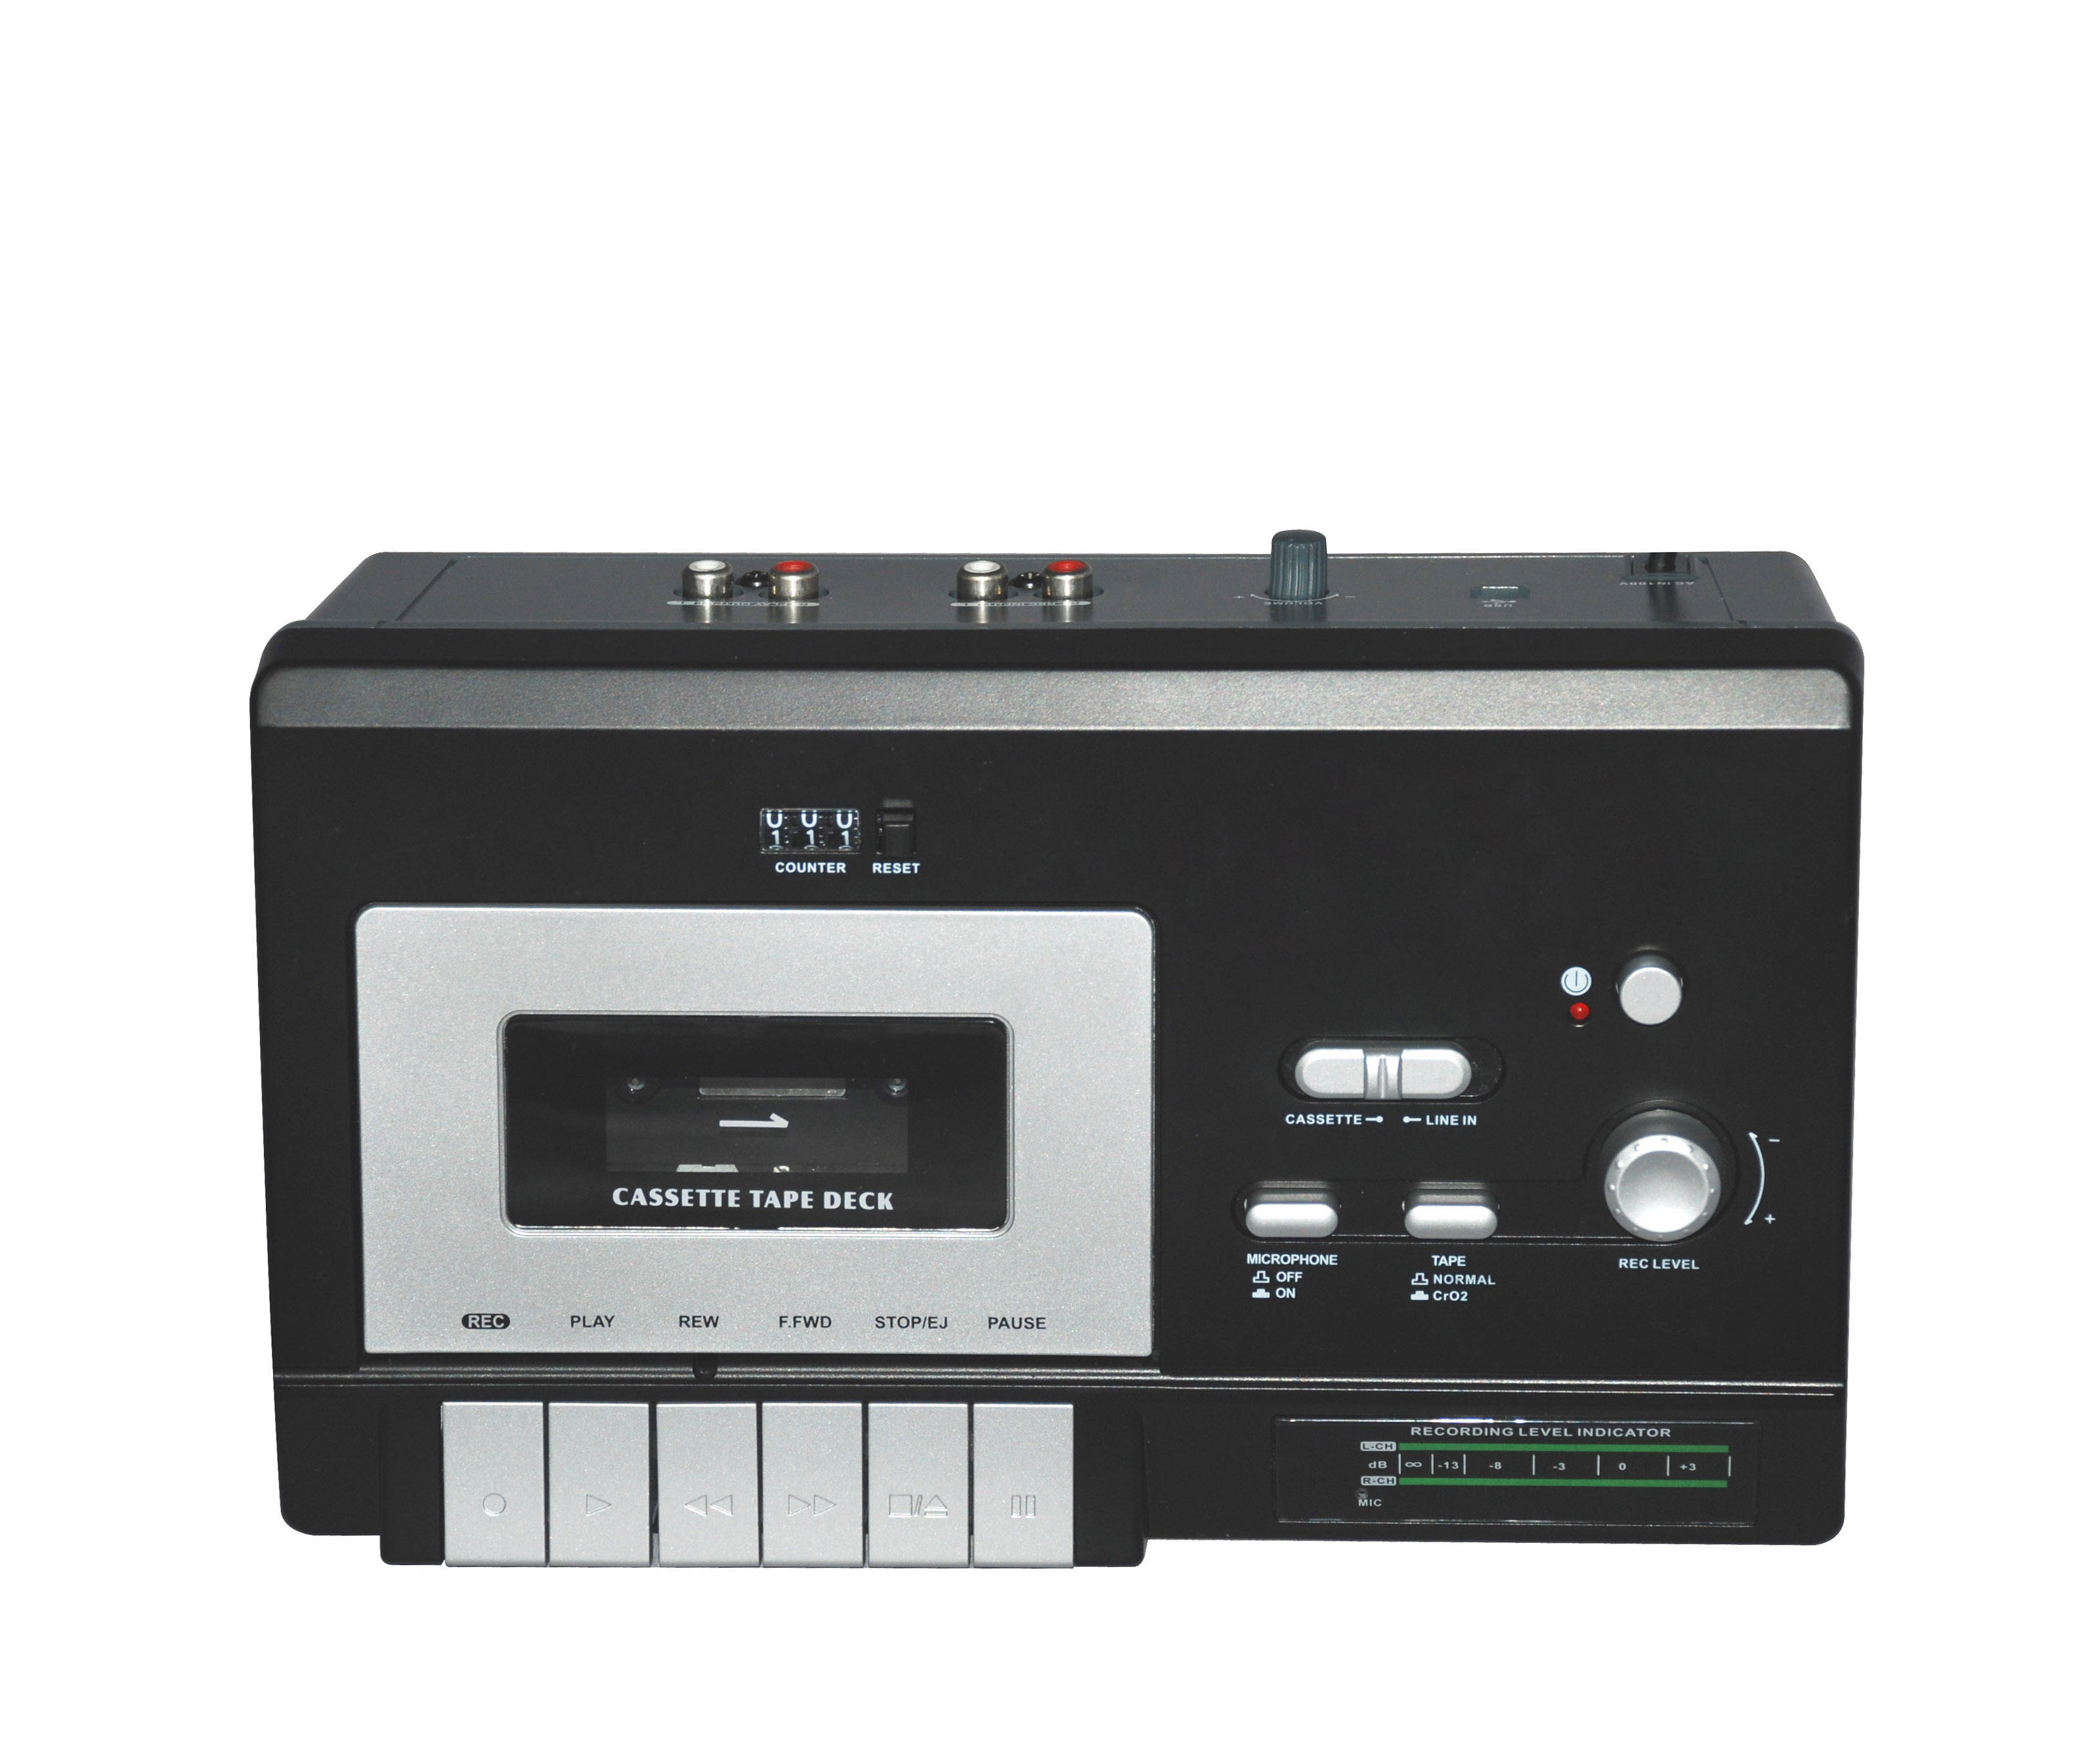 High Quality Portable music system w/ USB-PC Recording double tape turntable boombox audio cassette player recorder